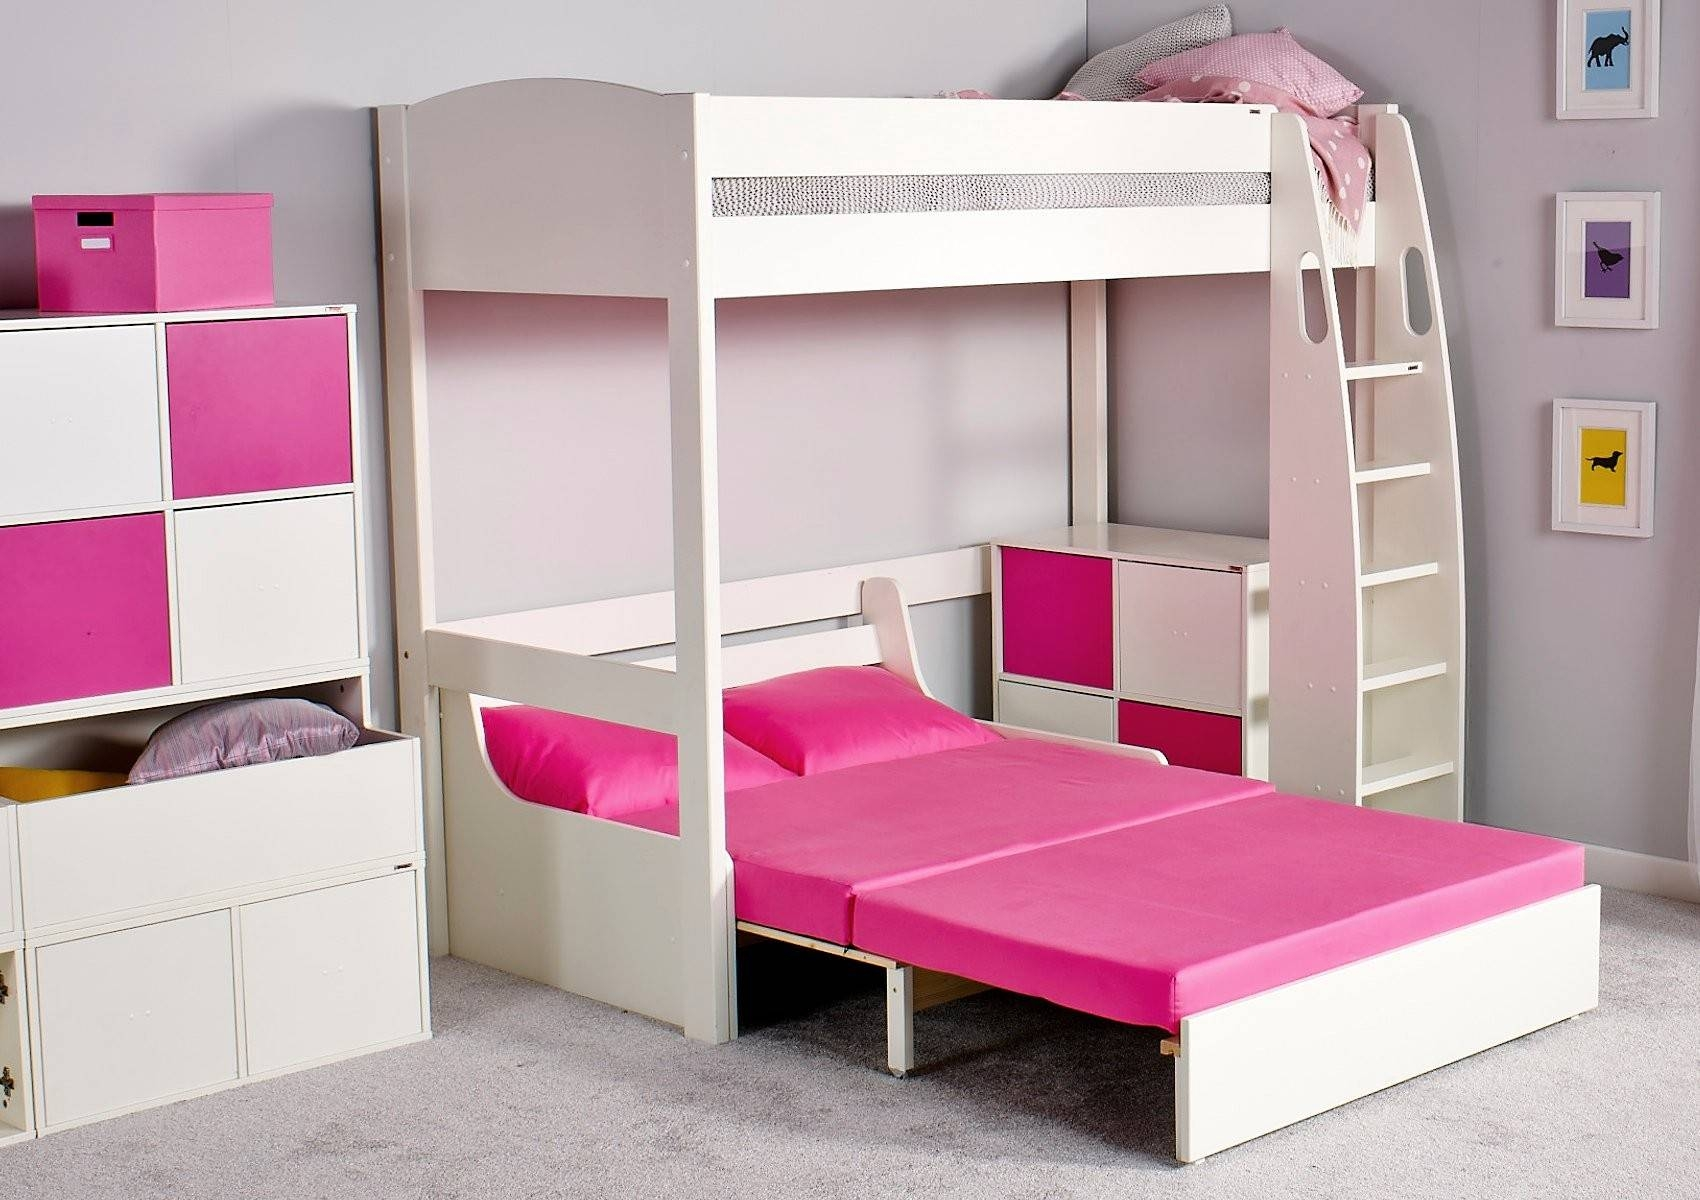 Stompa Unos High Sleeper Frame With Double Sofa Bed Only - Boys intended for High Sleeper With Sofa and Desk (Image 19 of 25)